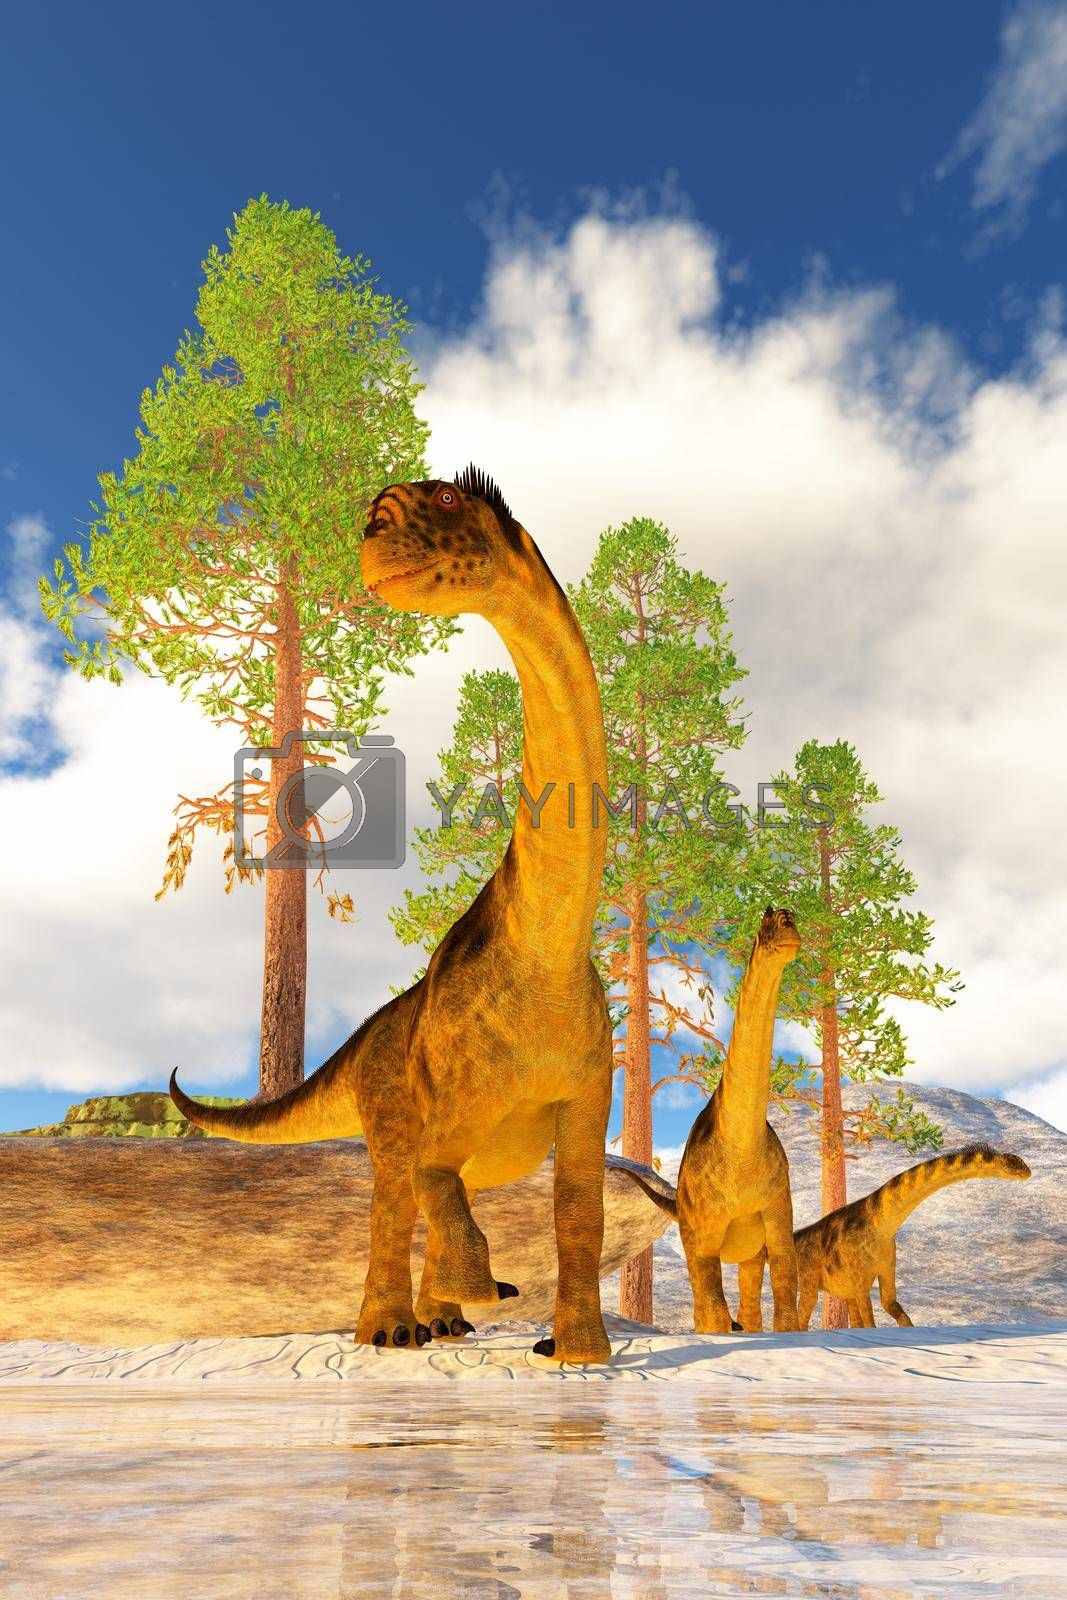 A herd of Camarasaurus dinosaurs search for vegetation to eat during the Jurassic Age of North America.